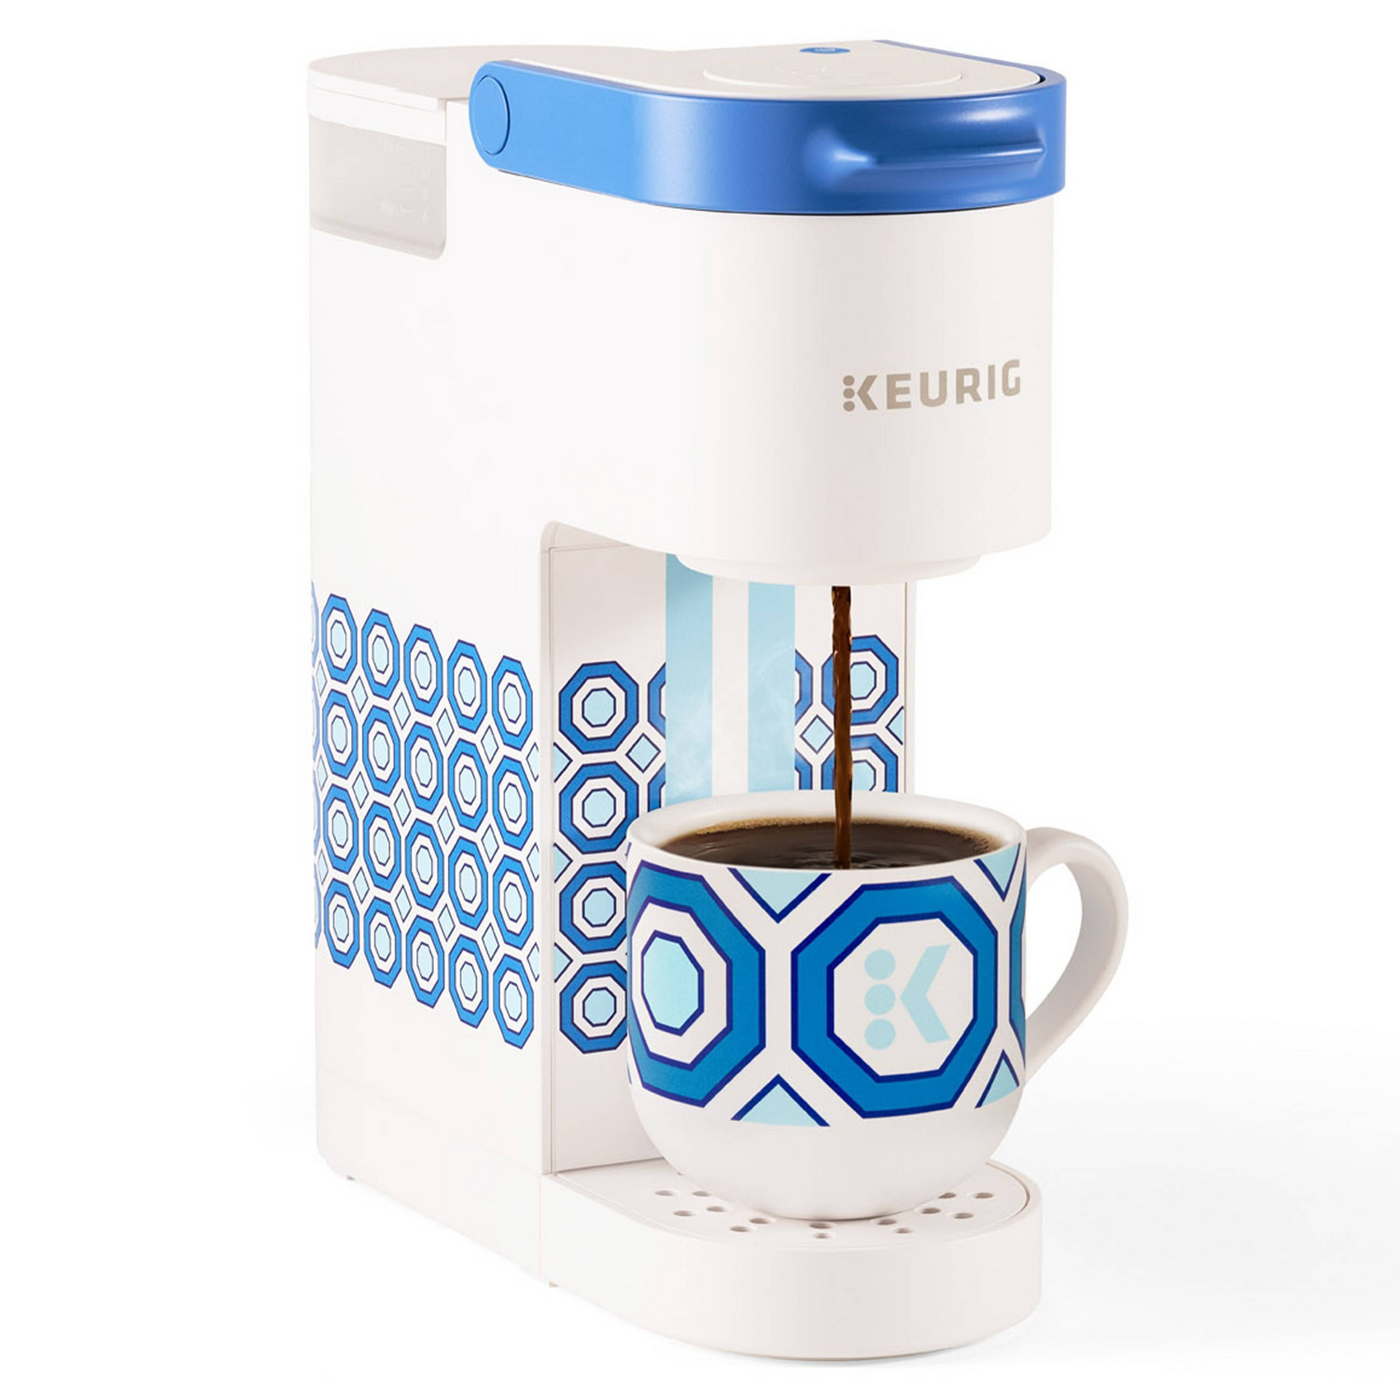 Keurig single serve coffee maker with blue and white geometric pattern